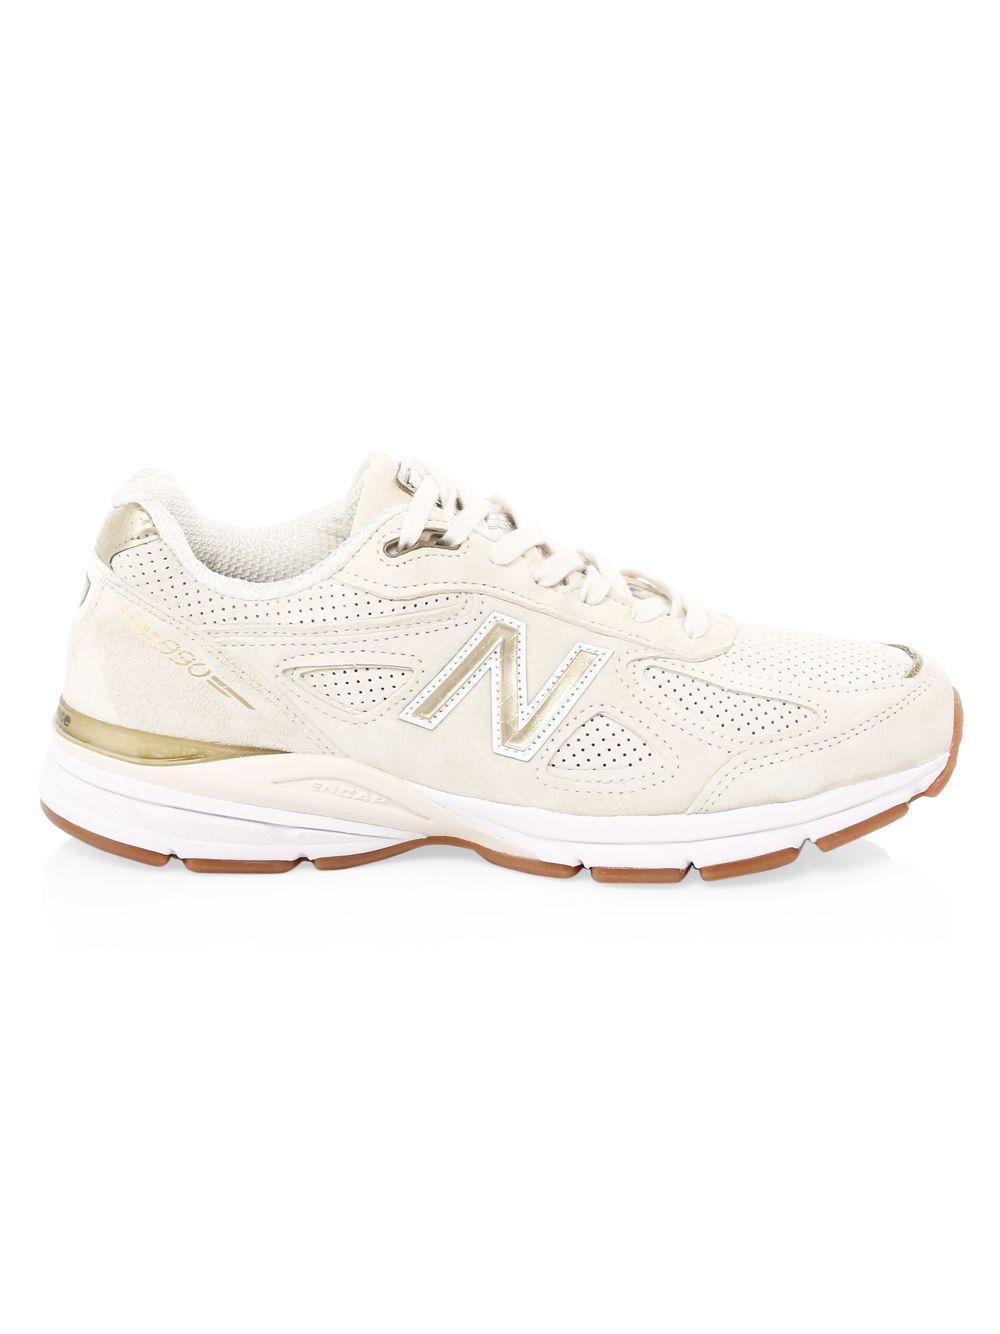 3cafb6bb296a0 New Balance 990 Suede & Mesh Sneakers in White - Lyst